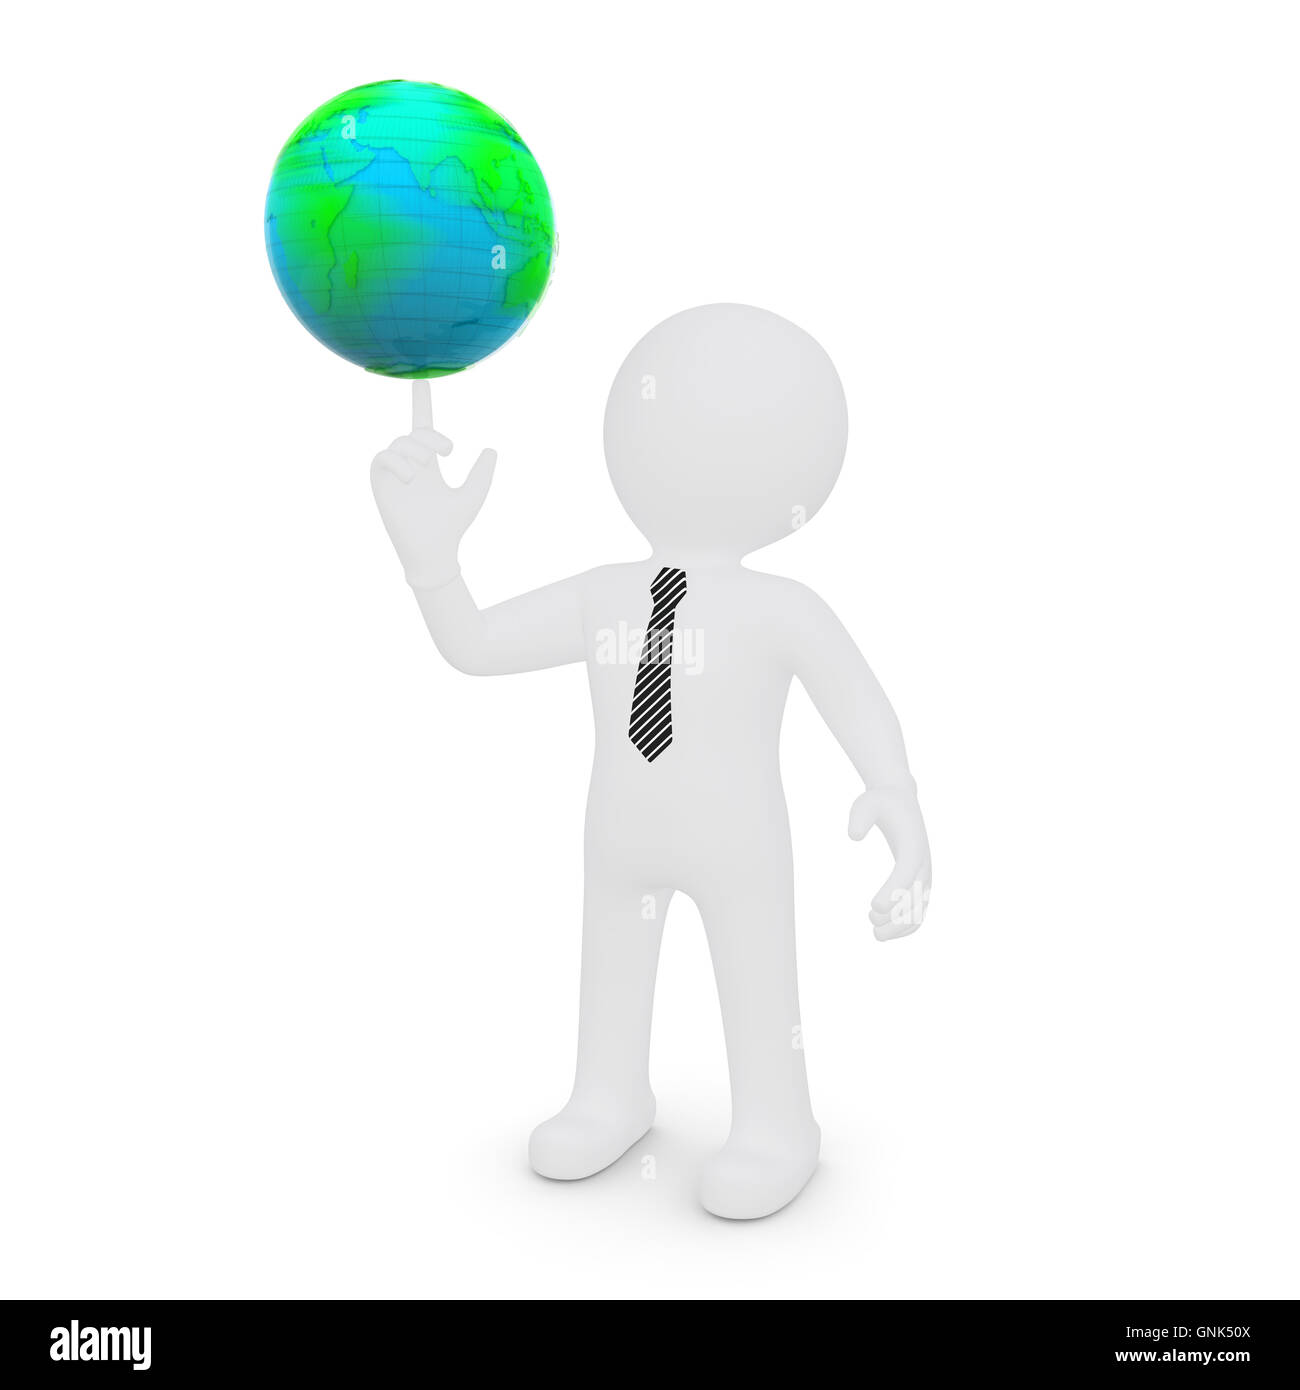 The white man's finger rotates the earth - Stock Image